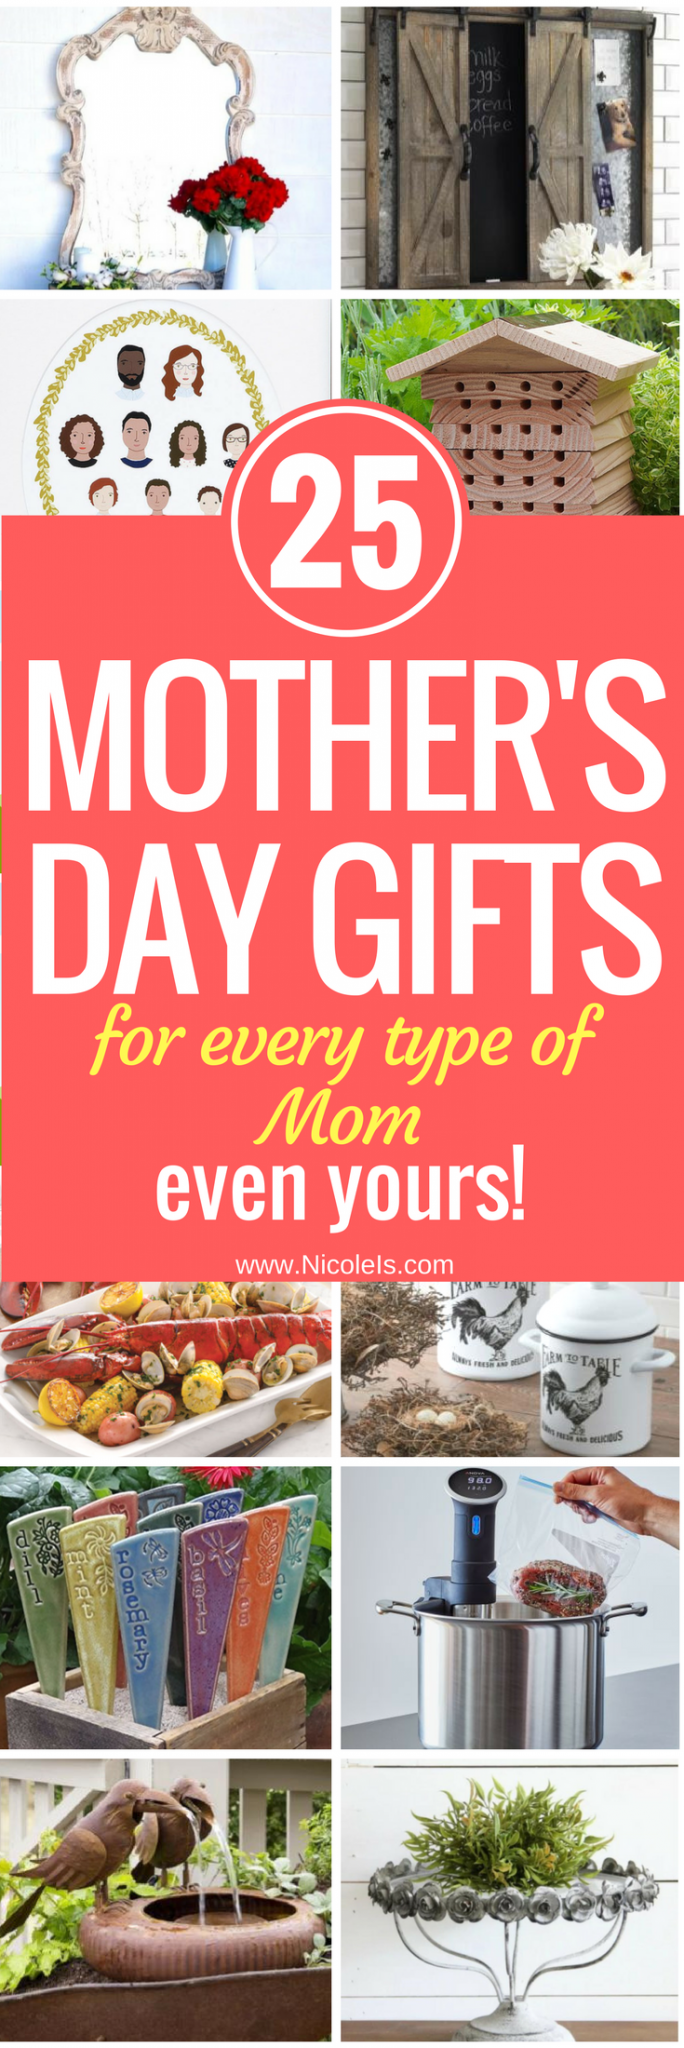 25 Mother's Day Gifts for every type of mom! | Gifts for Mom | Gifts for Her | Gifts for Women | Gifts for Grandmother | Gifts for Aunt | Gifts for Sister | Gifts for Girlfriend | Mother's Day Gifts| Birthday Gifts for Her | Christmas Gifts for Her | Grandparent's Day Gifts | Gourmet Gifts | Garden Gifts | Farmhouse Style Gifts | Shabby Chic Gifts | Sustainable Gifts | Personalized Gifts | Christmas Gifts for Her | Valentine's Day Gifts for Her | Gifts for Wife | Gifts for Aunt